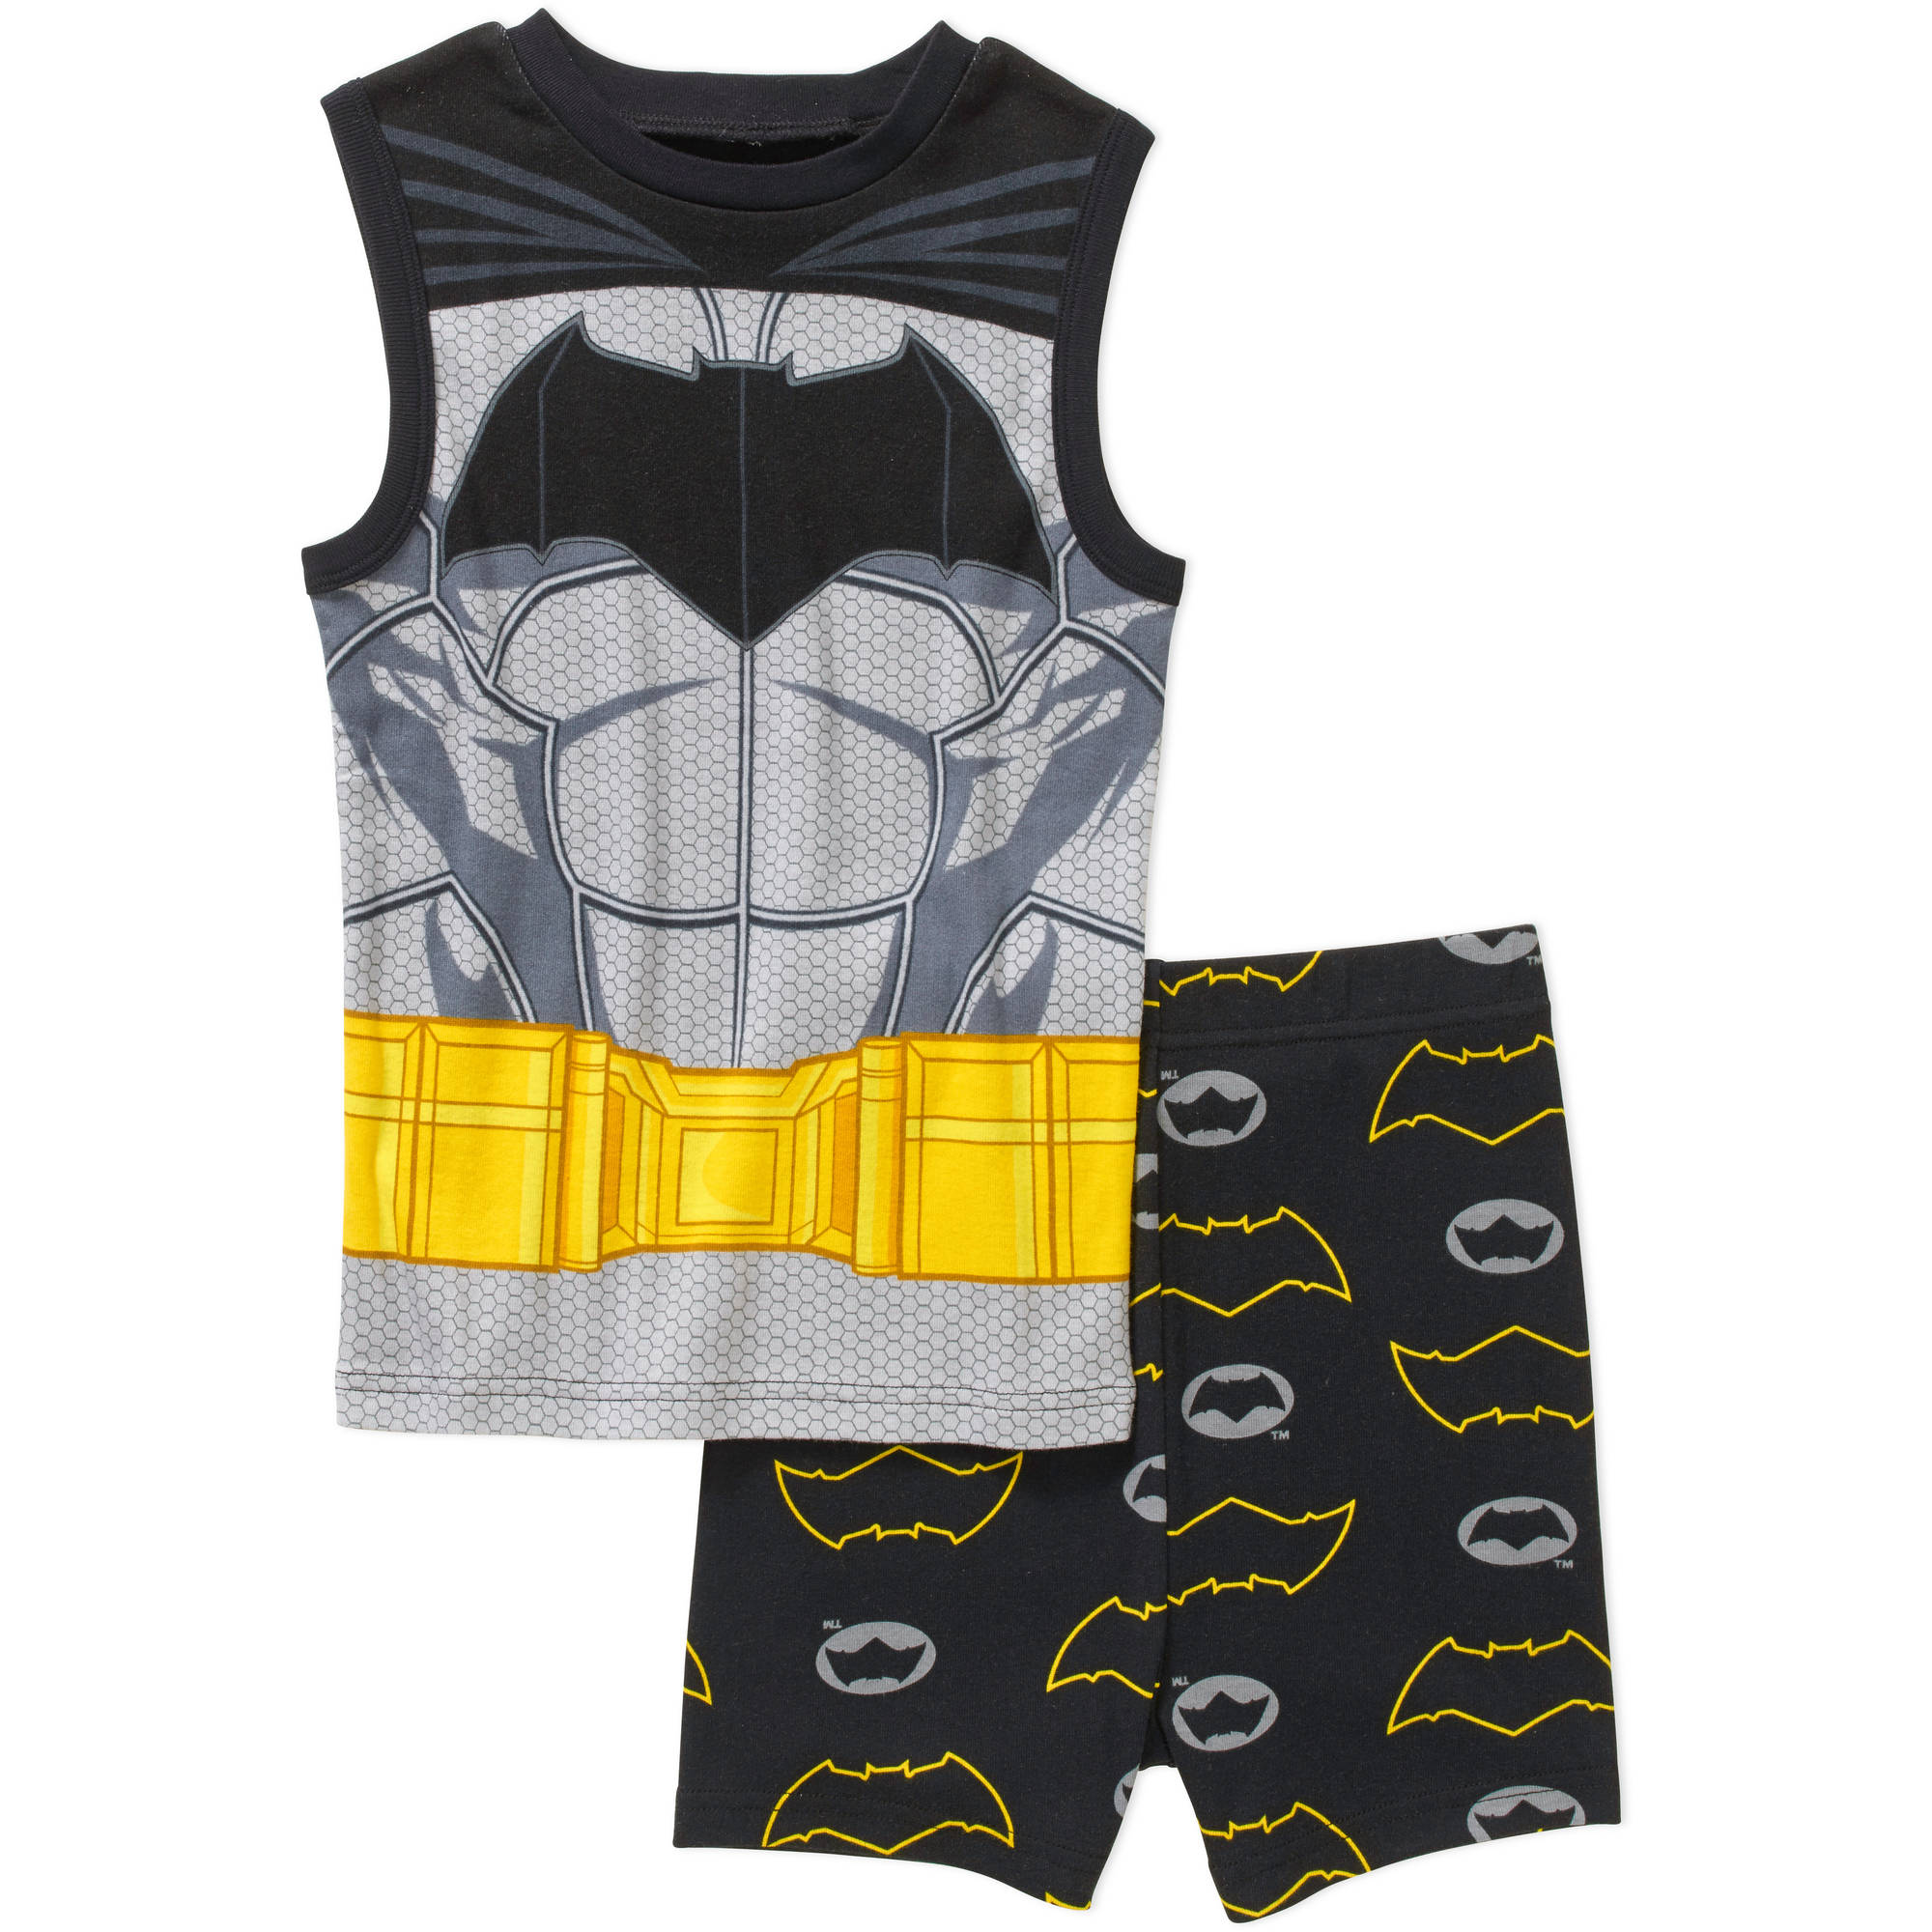 Batman Boys' License Tight Fit Cotton Muscle Sleep Shirt and Short 2 Piece Pajama Set